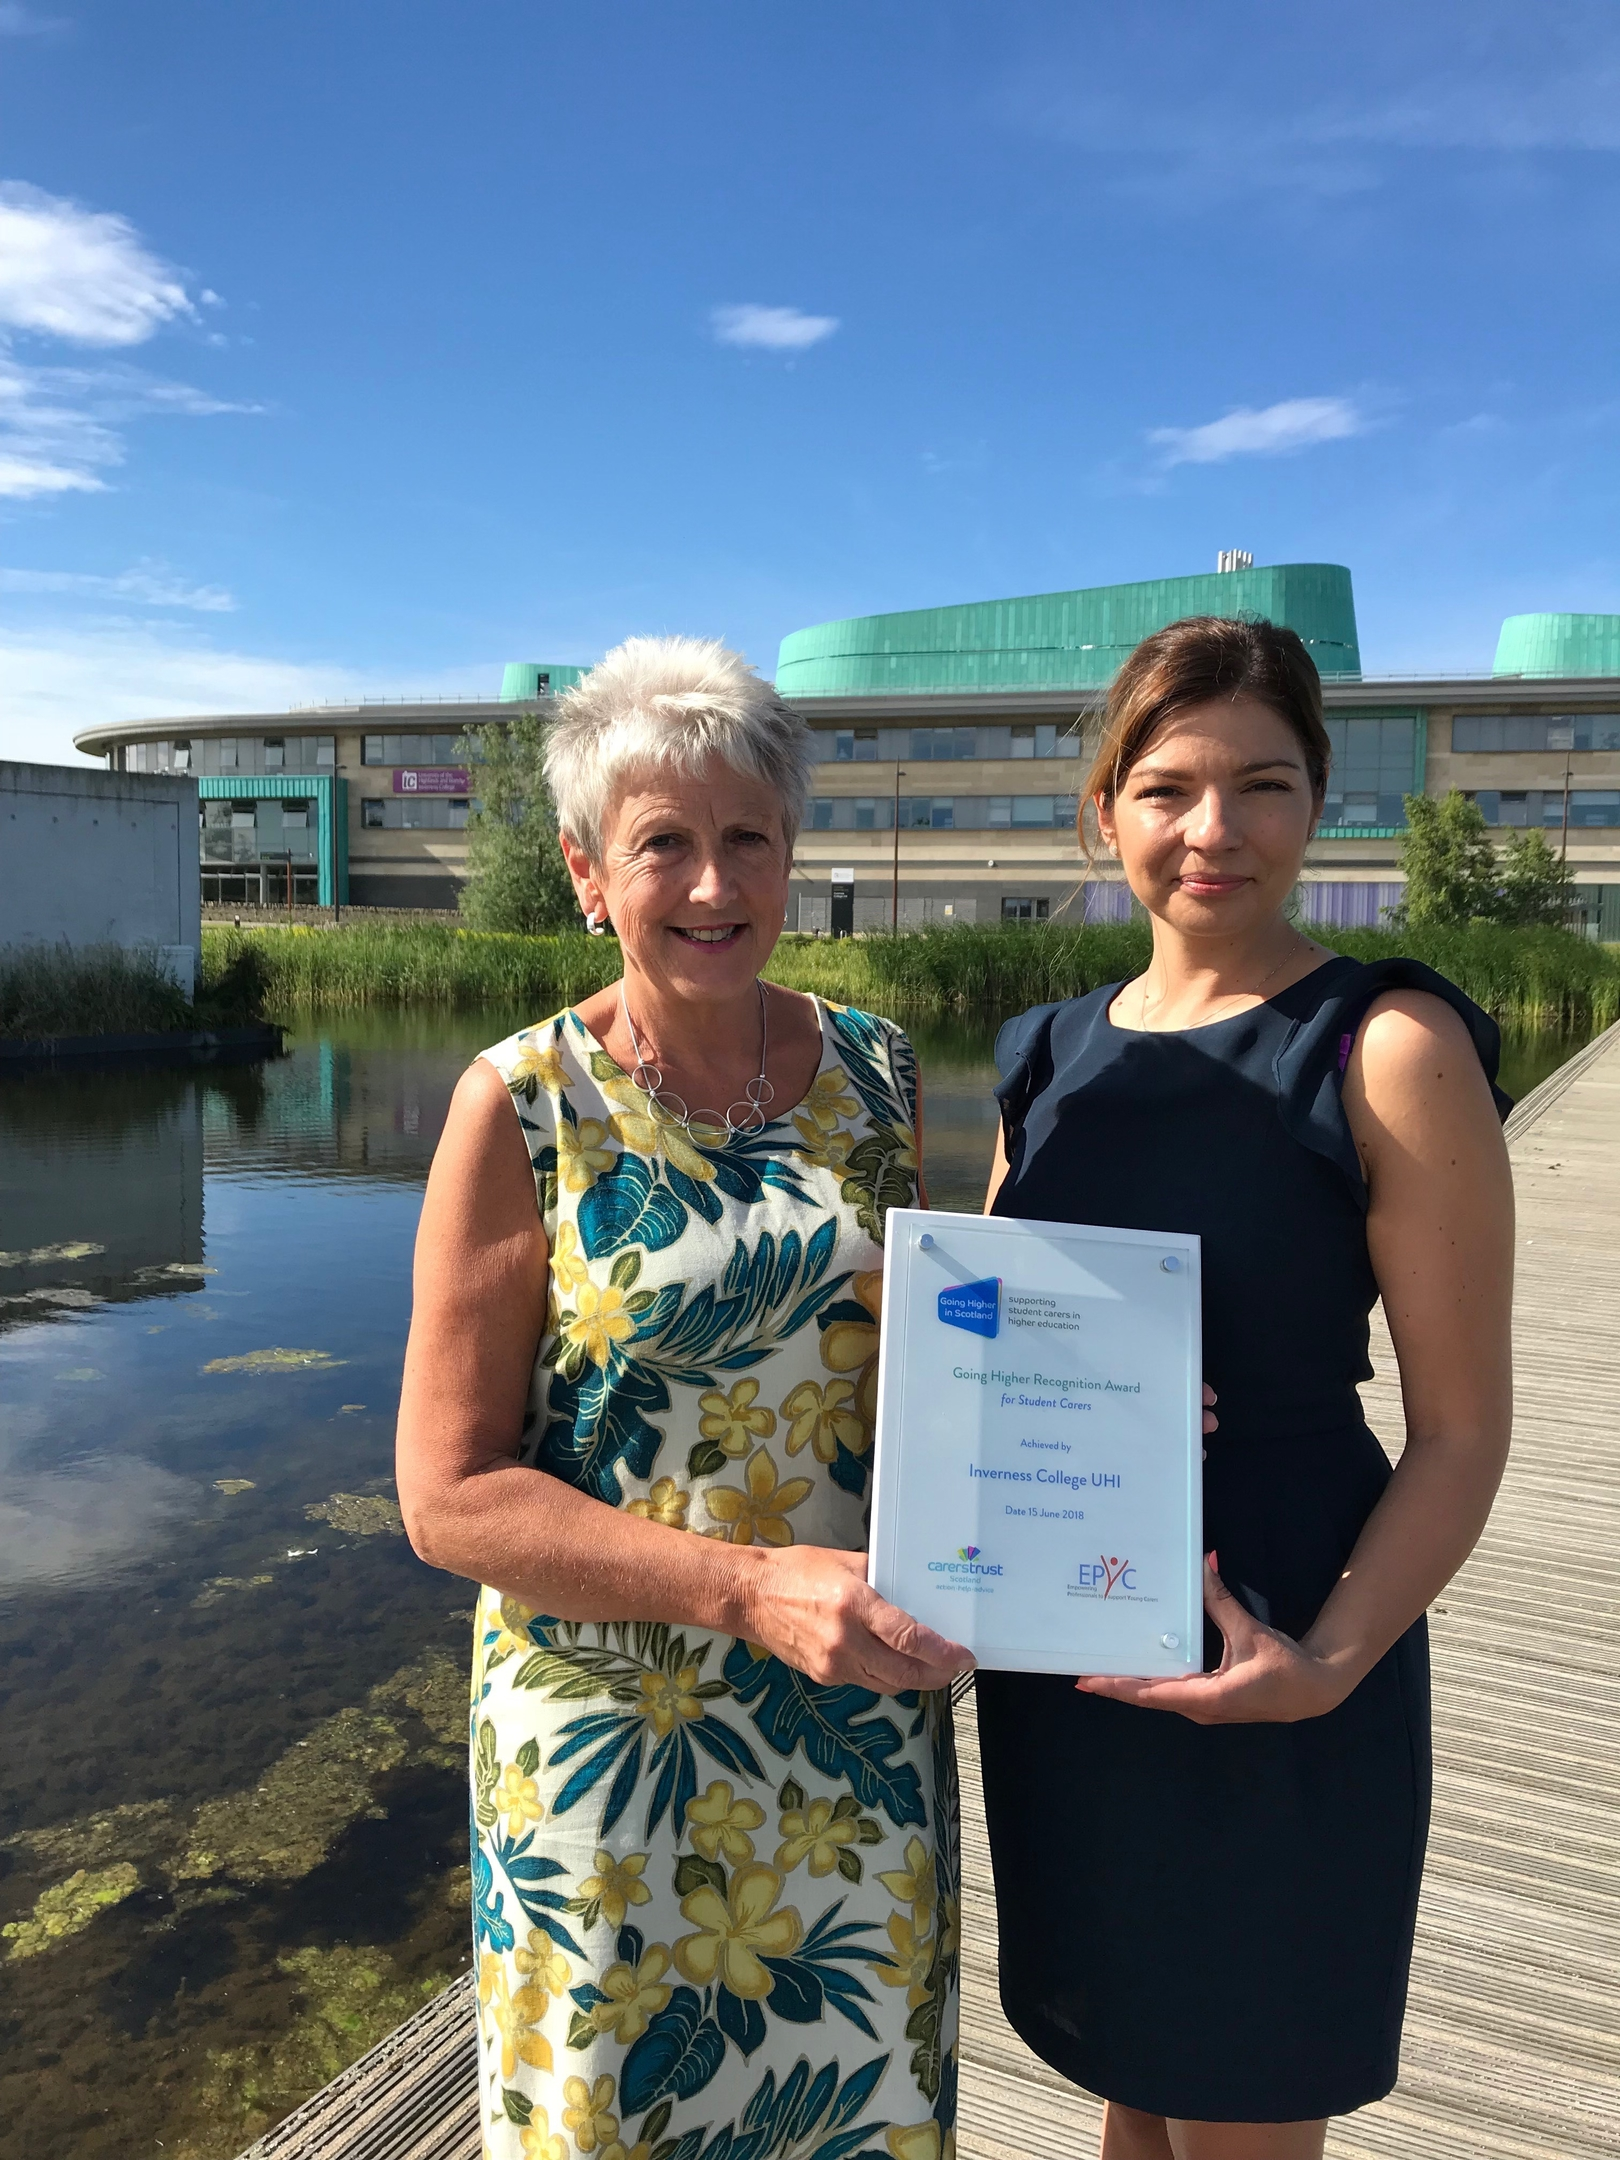 Evelyn Campbell and Anna Czekala of Inverness College UHI